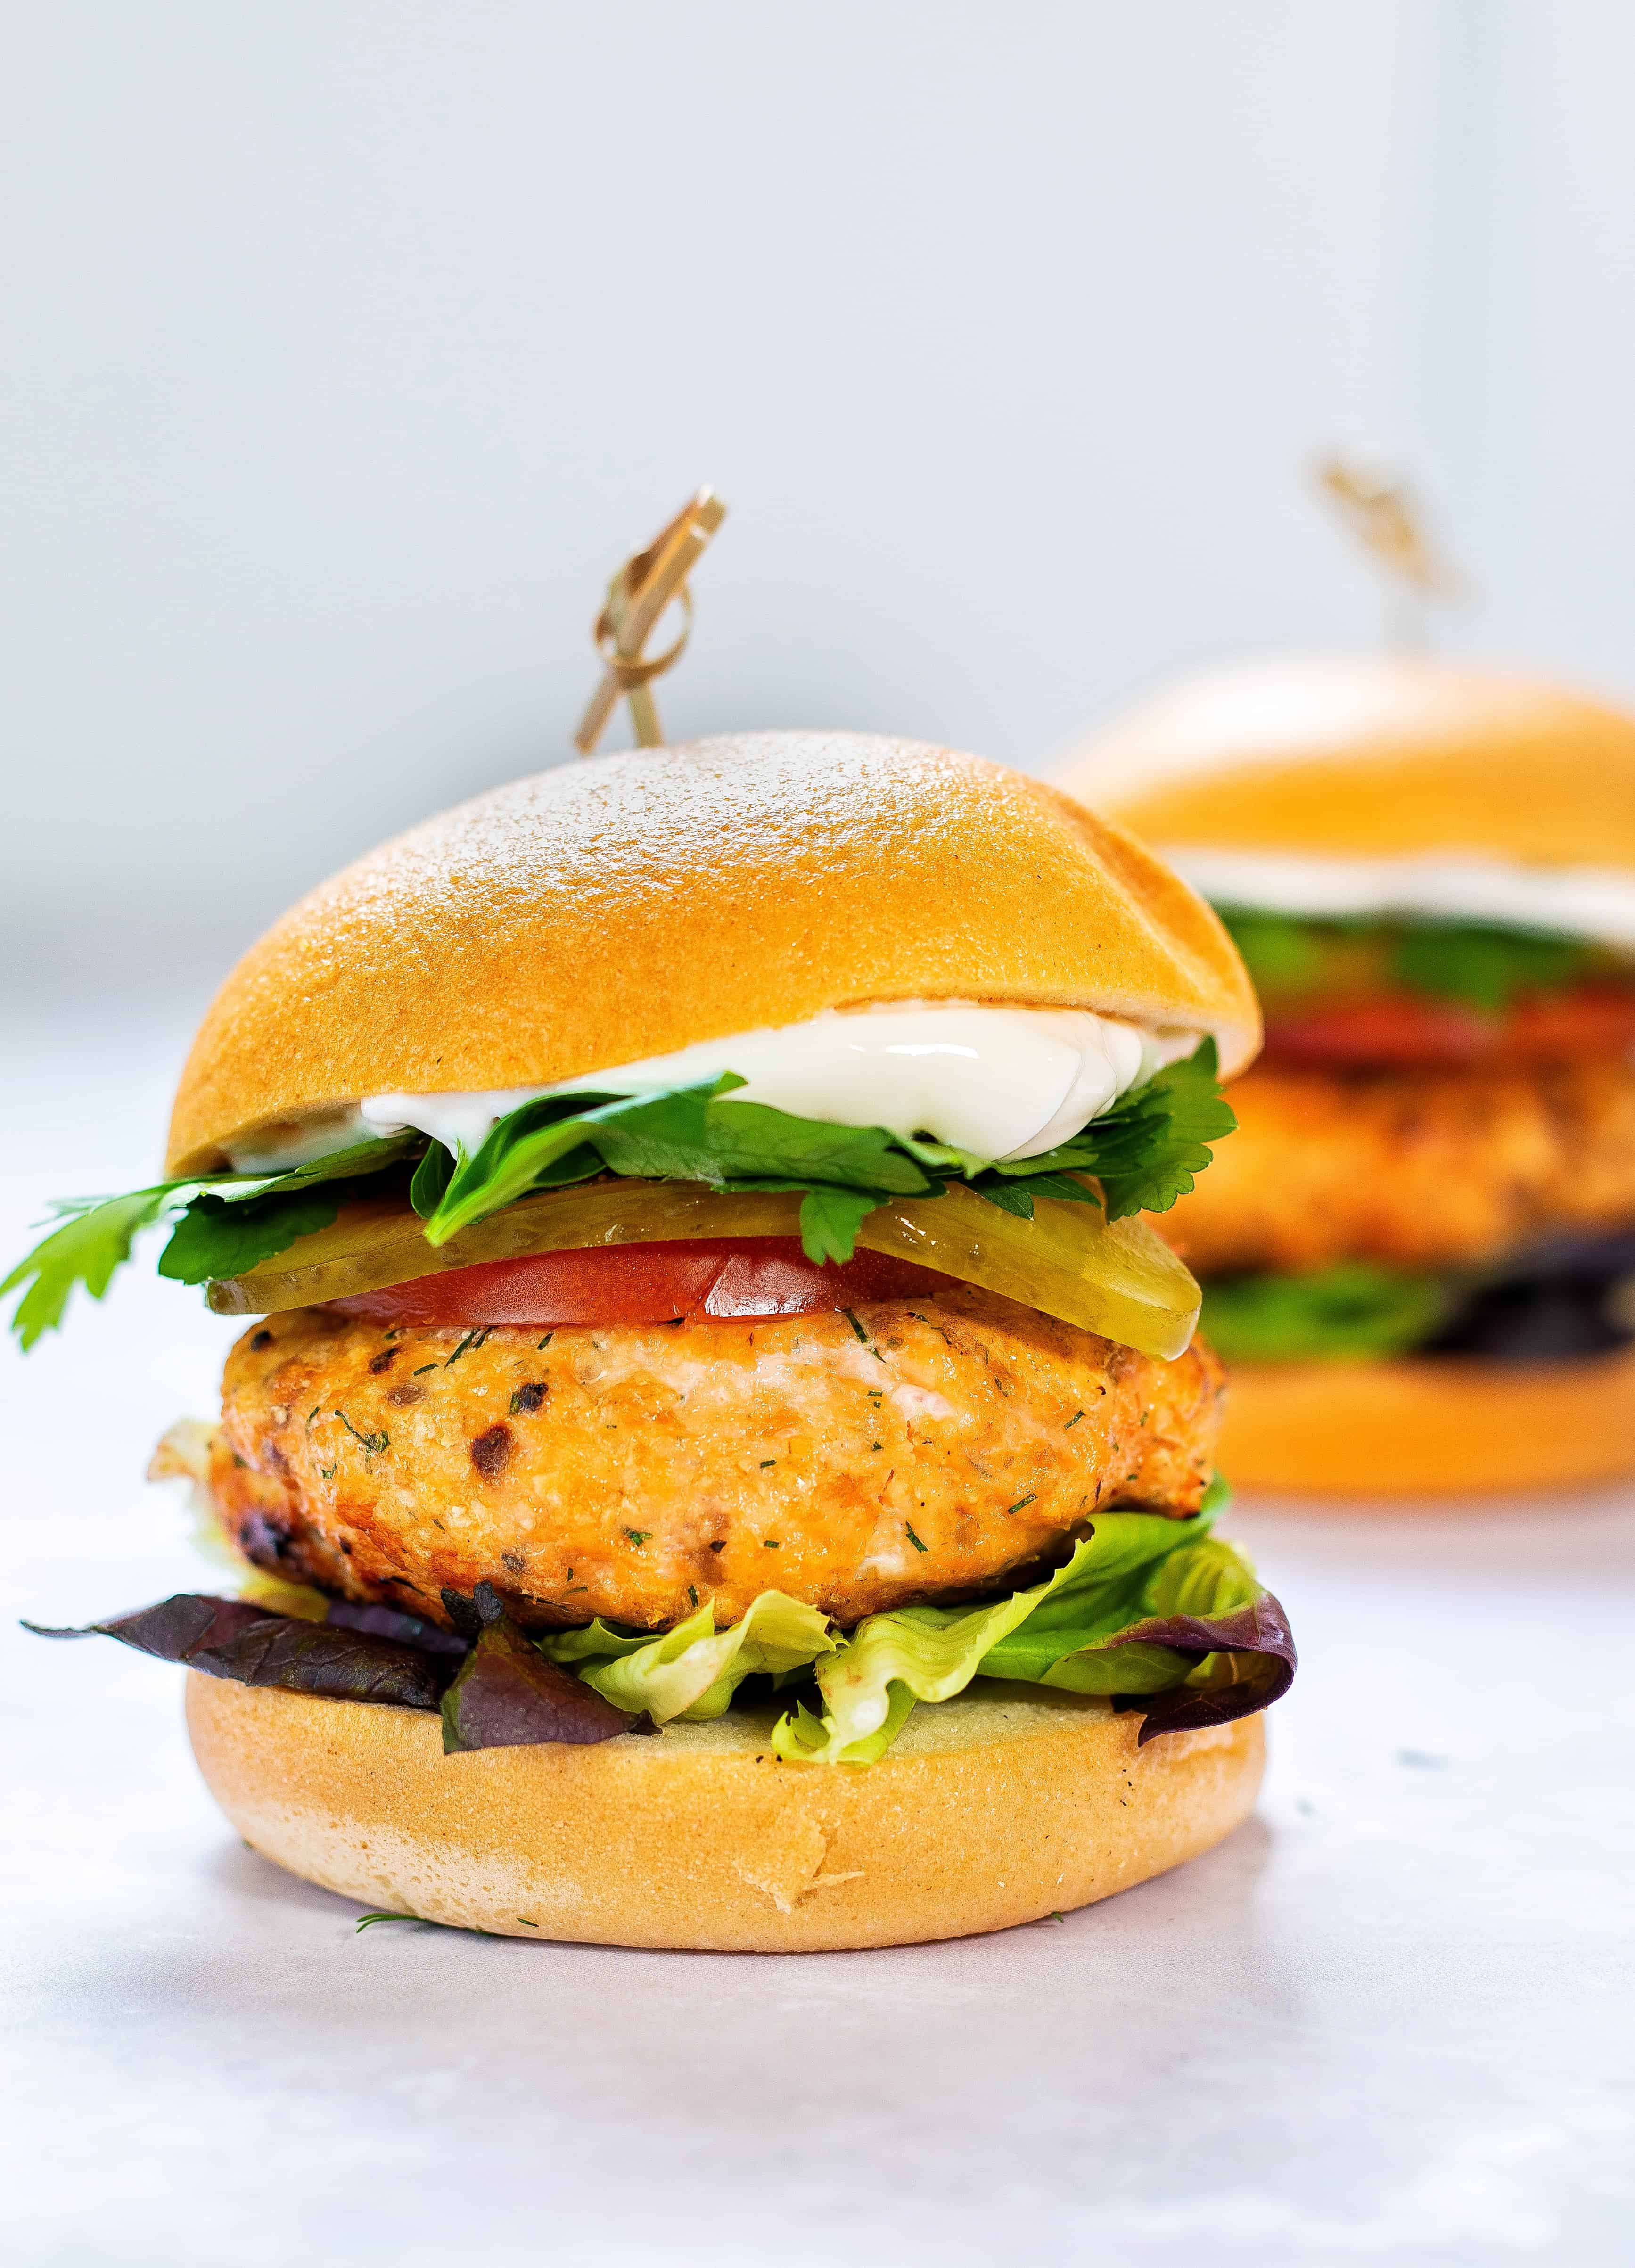 BBQ Salmon Burger - 15 minutes 6 ingredients gluten, dairy and egg free!